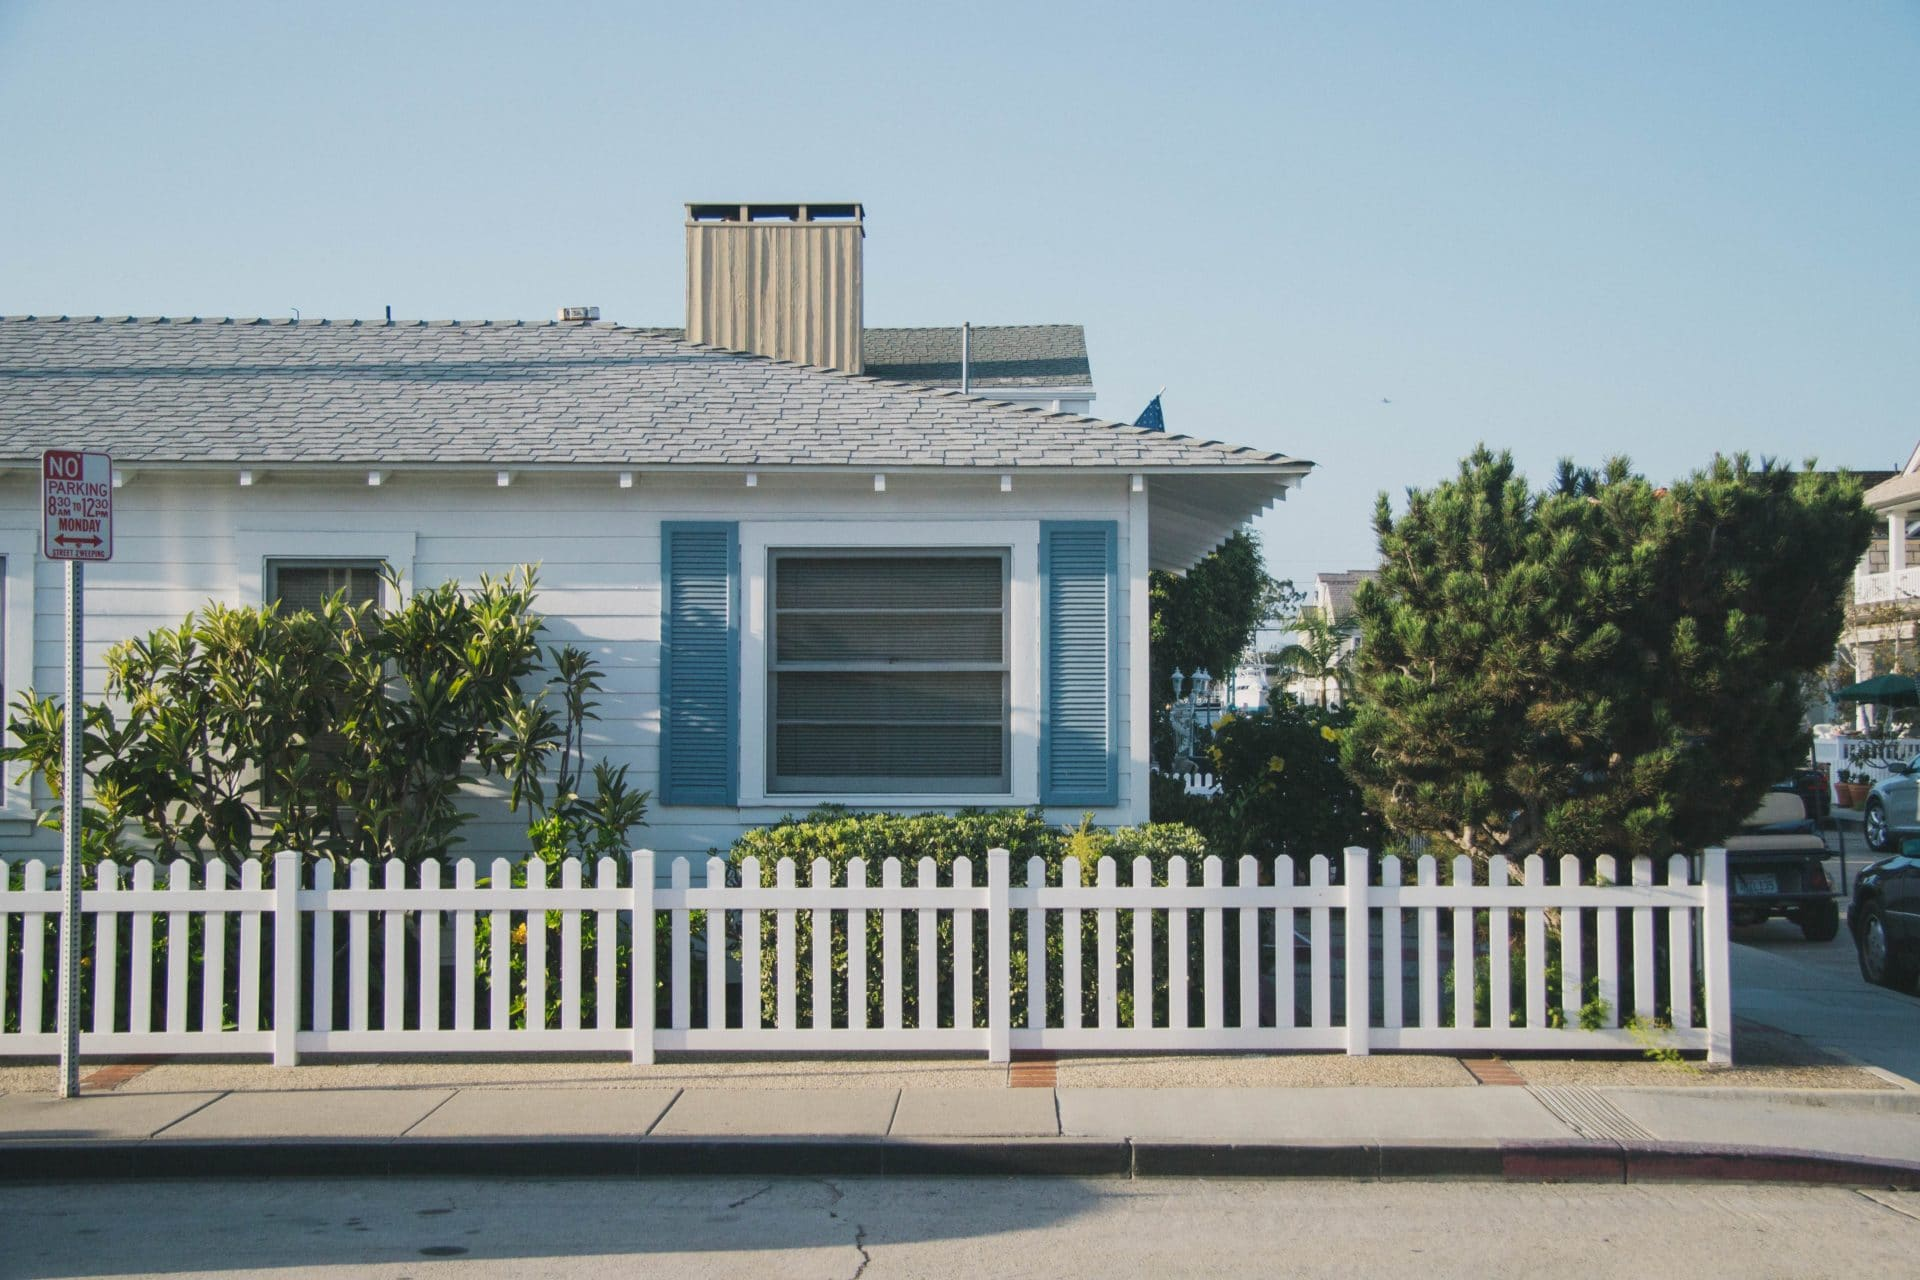 Picture of a House for Real Estate News for Investors Podcast Episode #532